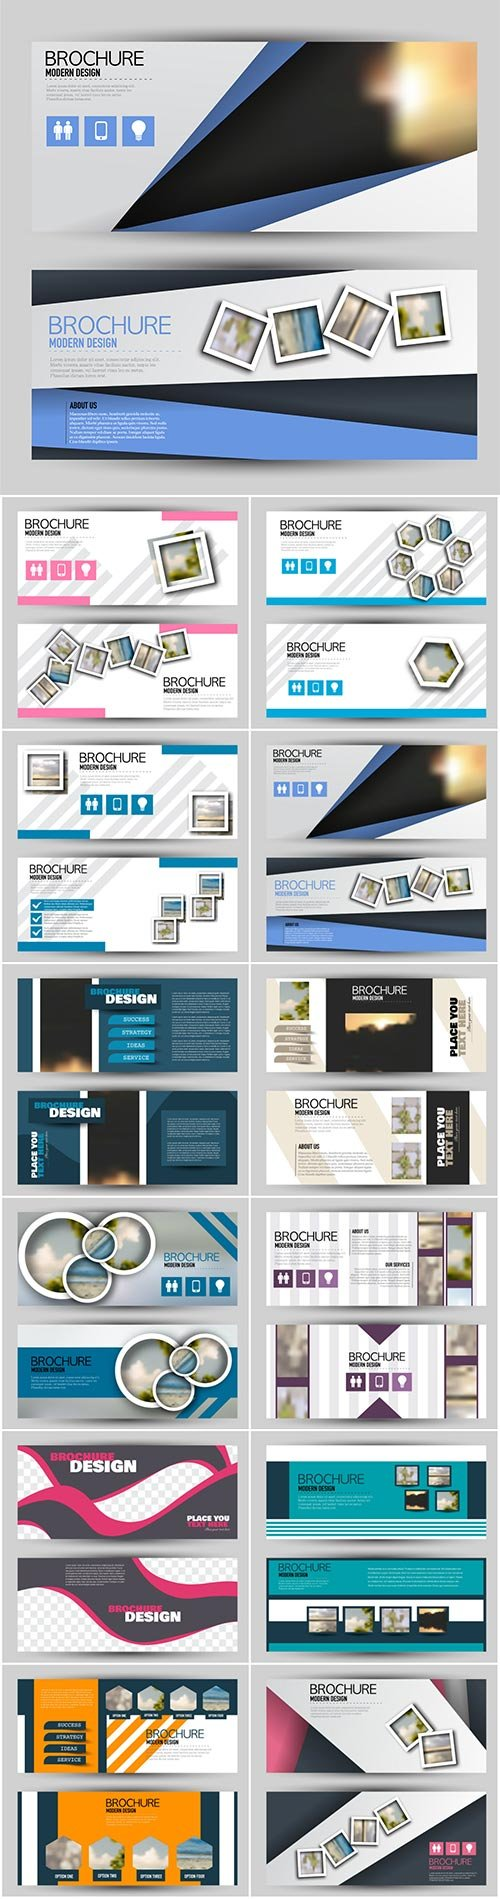 Set of banners for web and advertisement print out, vector horizontal flyer handout design